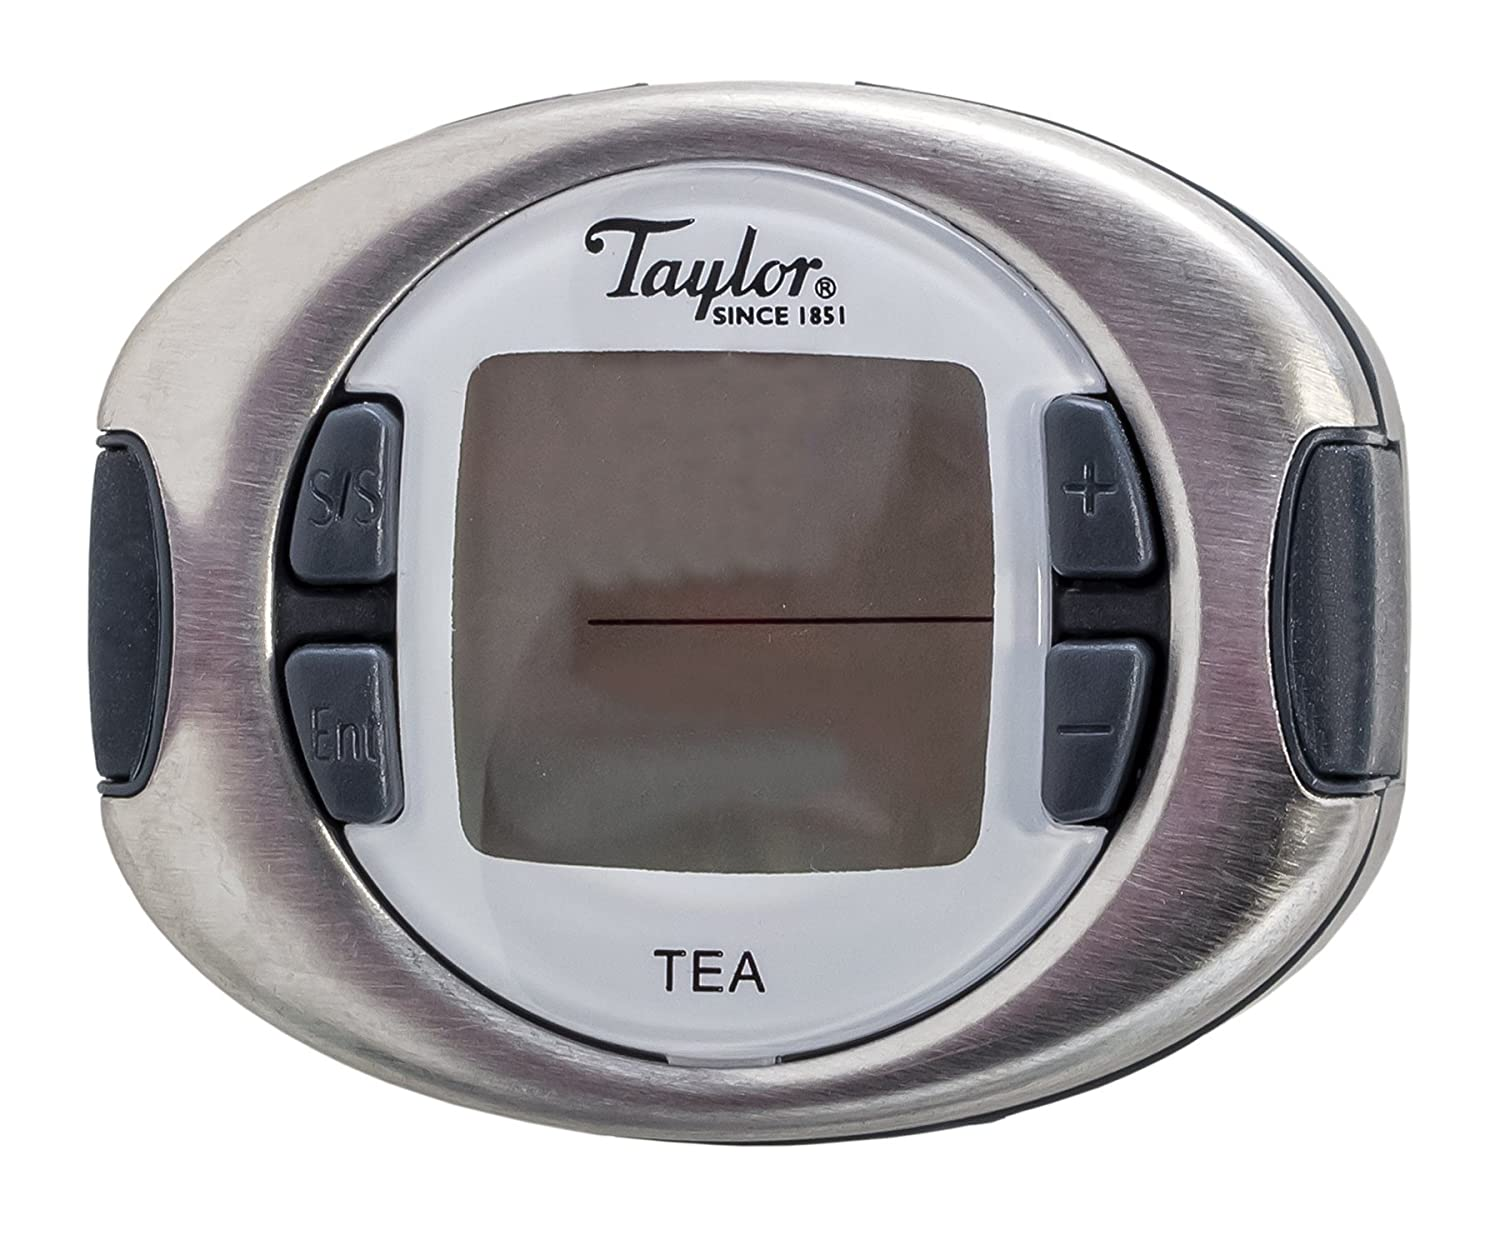 Taylor Connoissuer Tea Thermometer Timer New 516